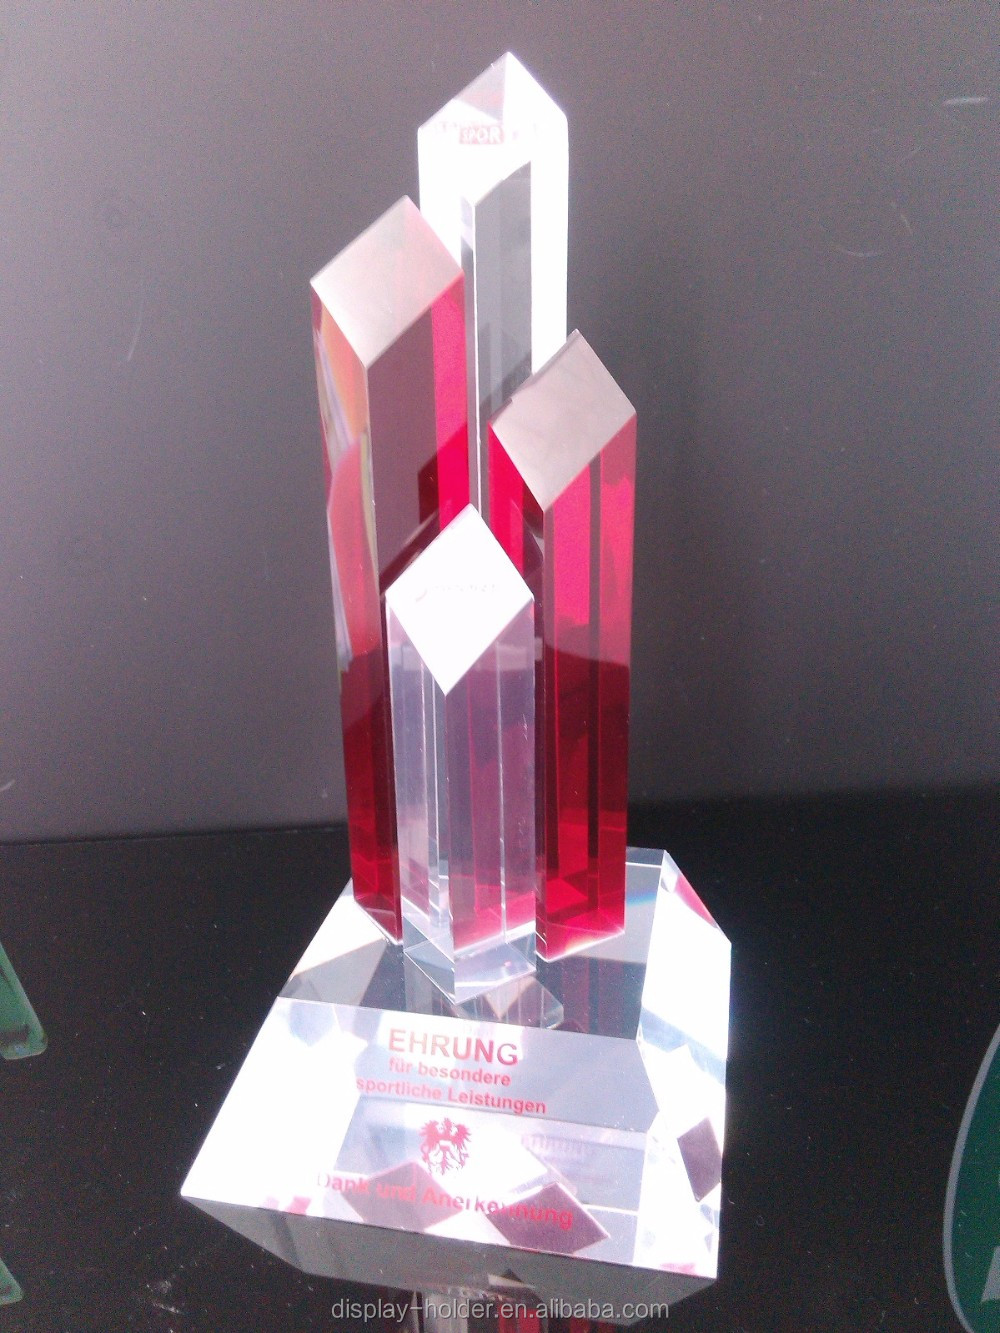 Custom manufacture high quality acrylic award trophy